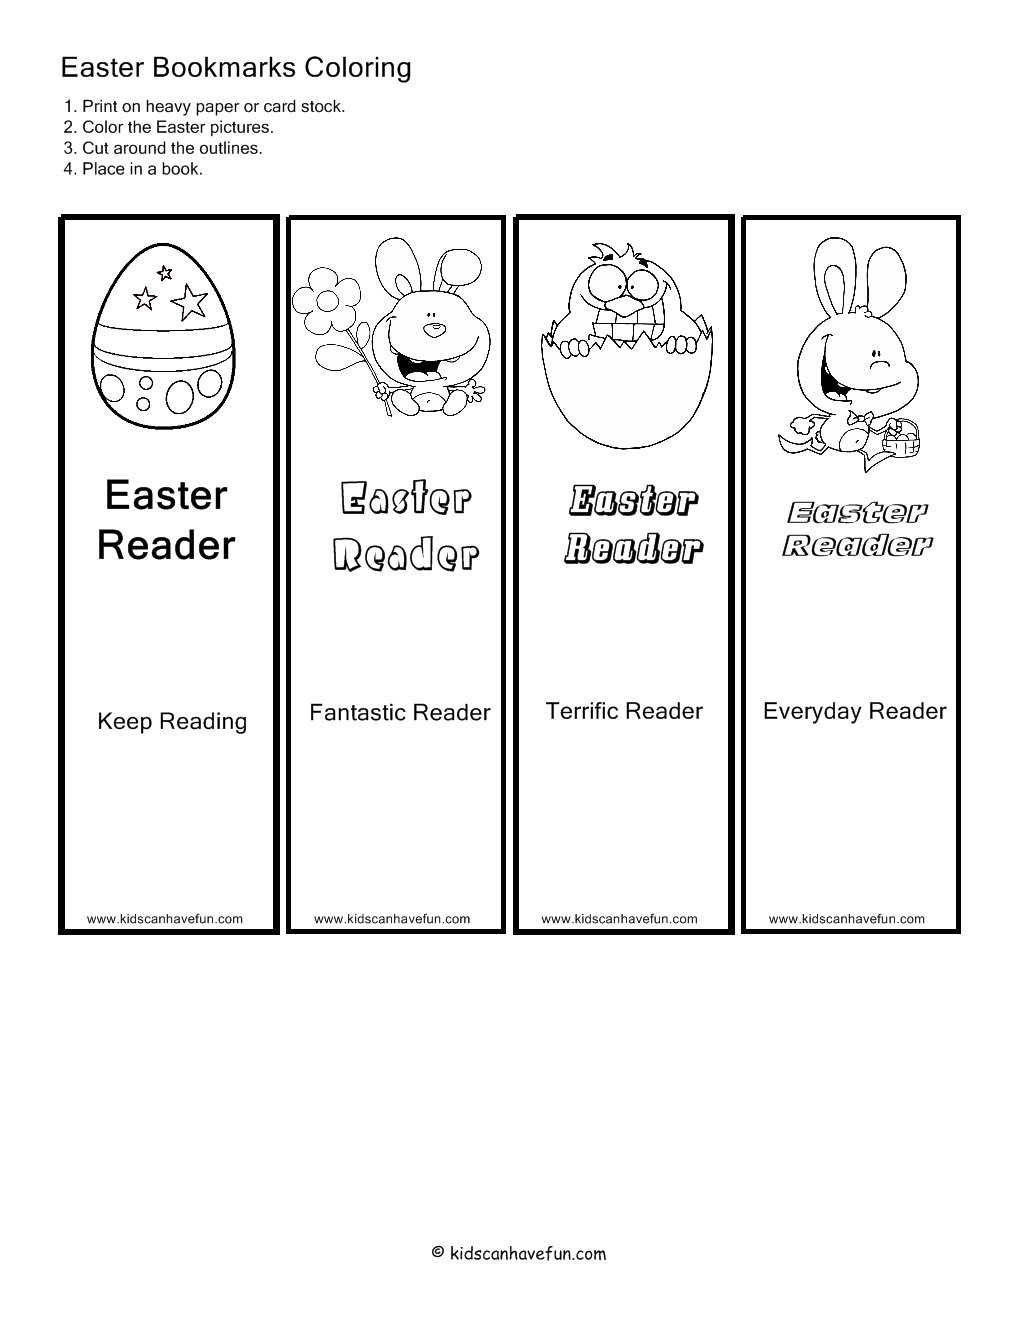 coloring easter bookmarks a printable to color this easter stephanie corfee bookmarks easter coloring